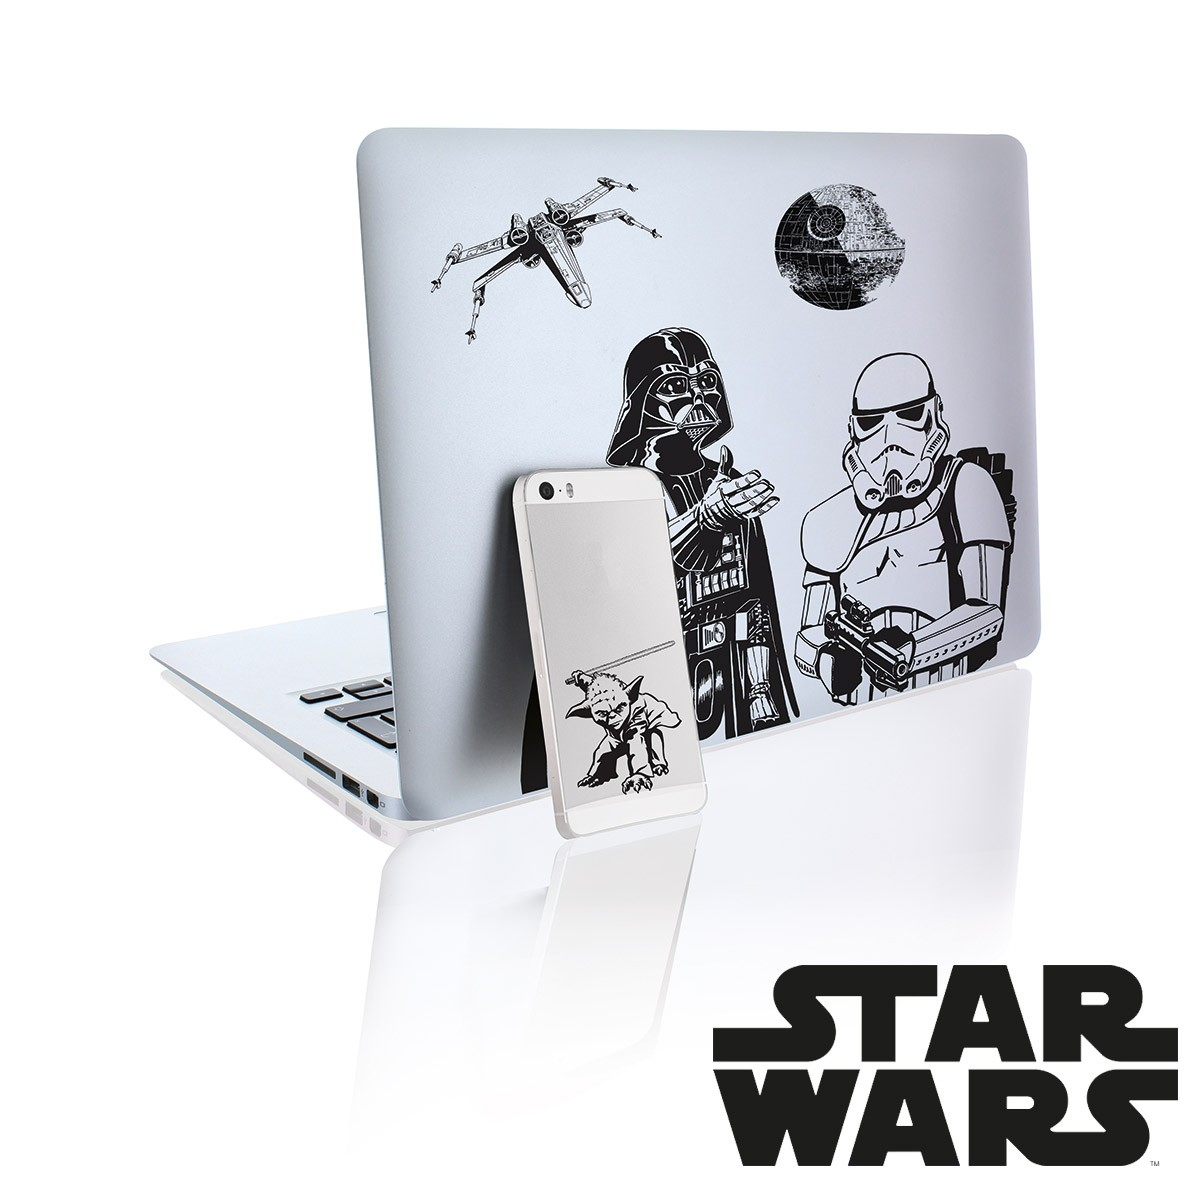 Autocollants star wars stickers ultra geek sur logeekdesign for Autocollant mural star wars